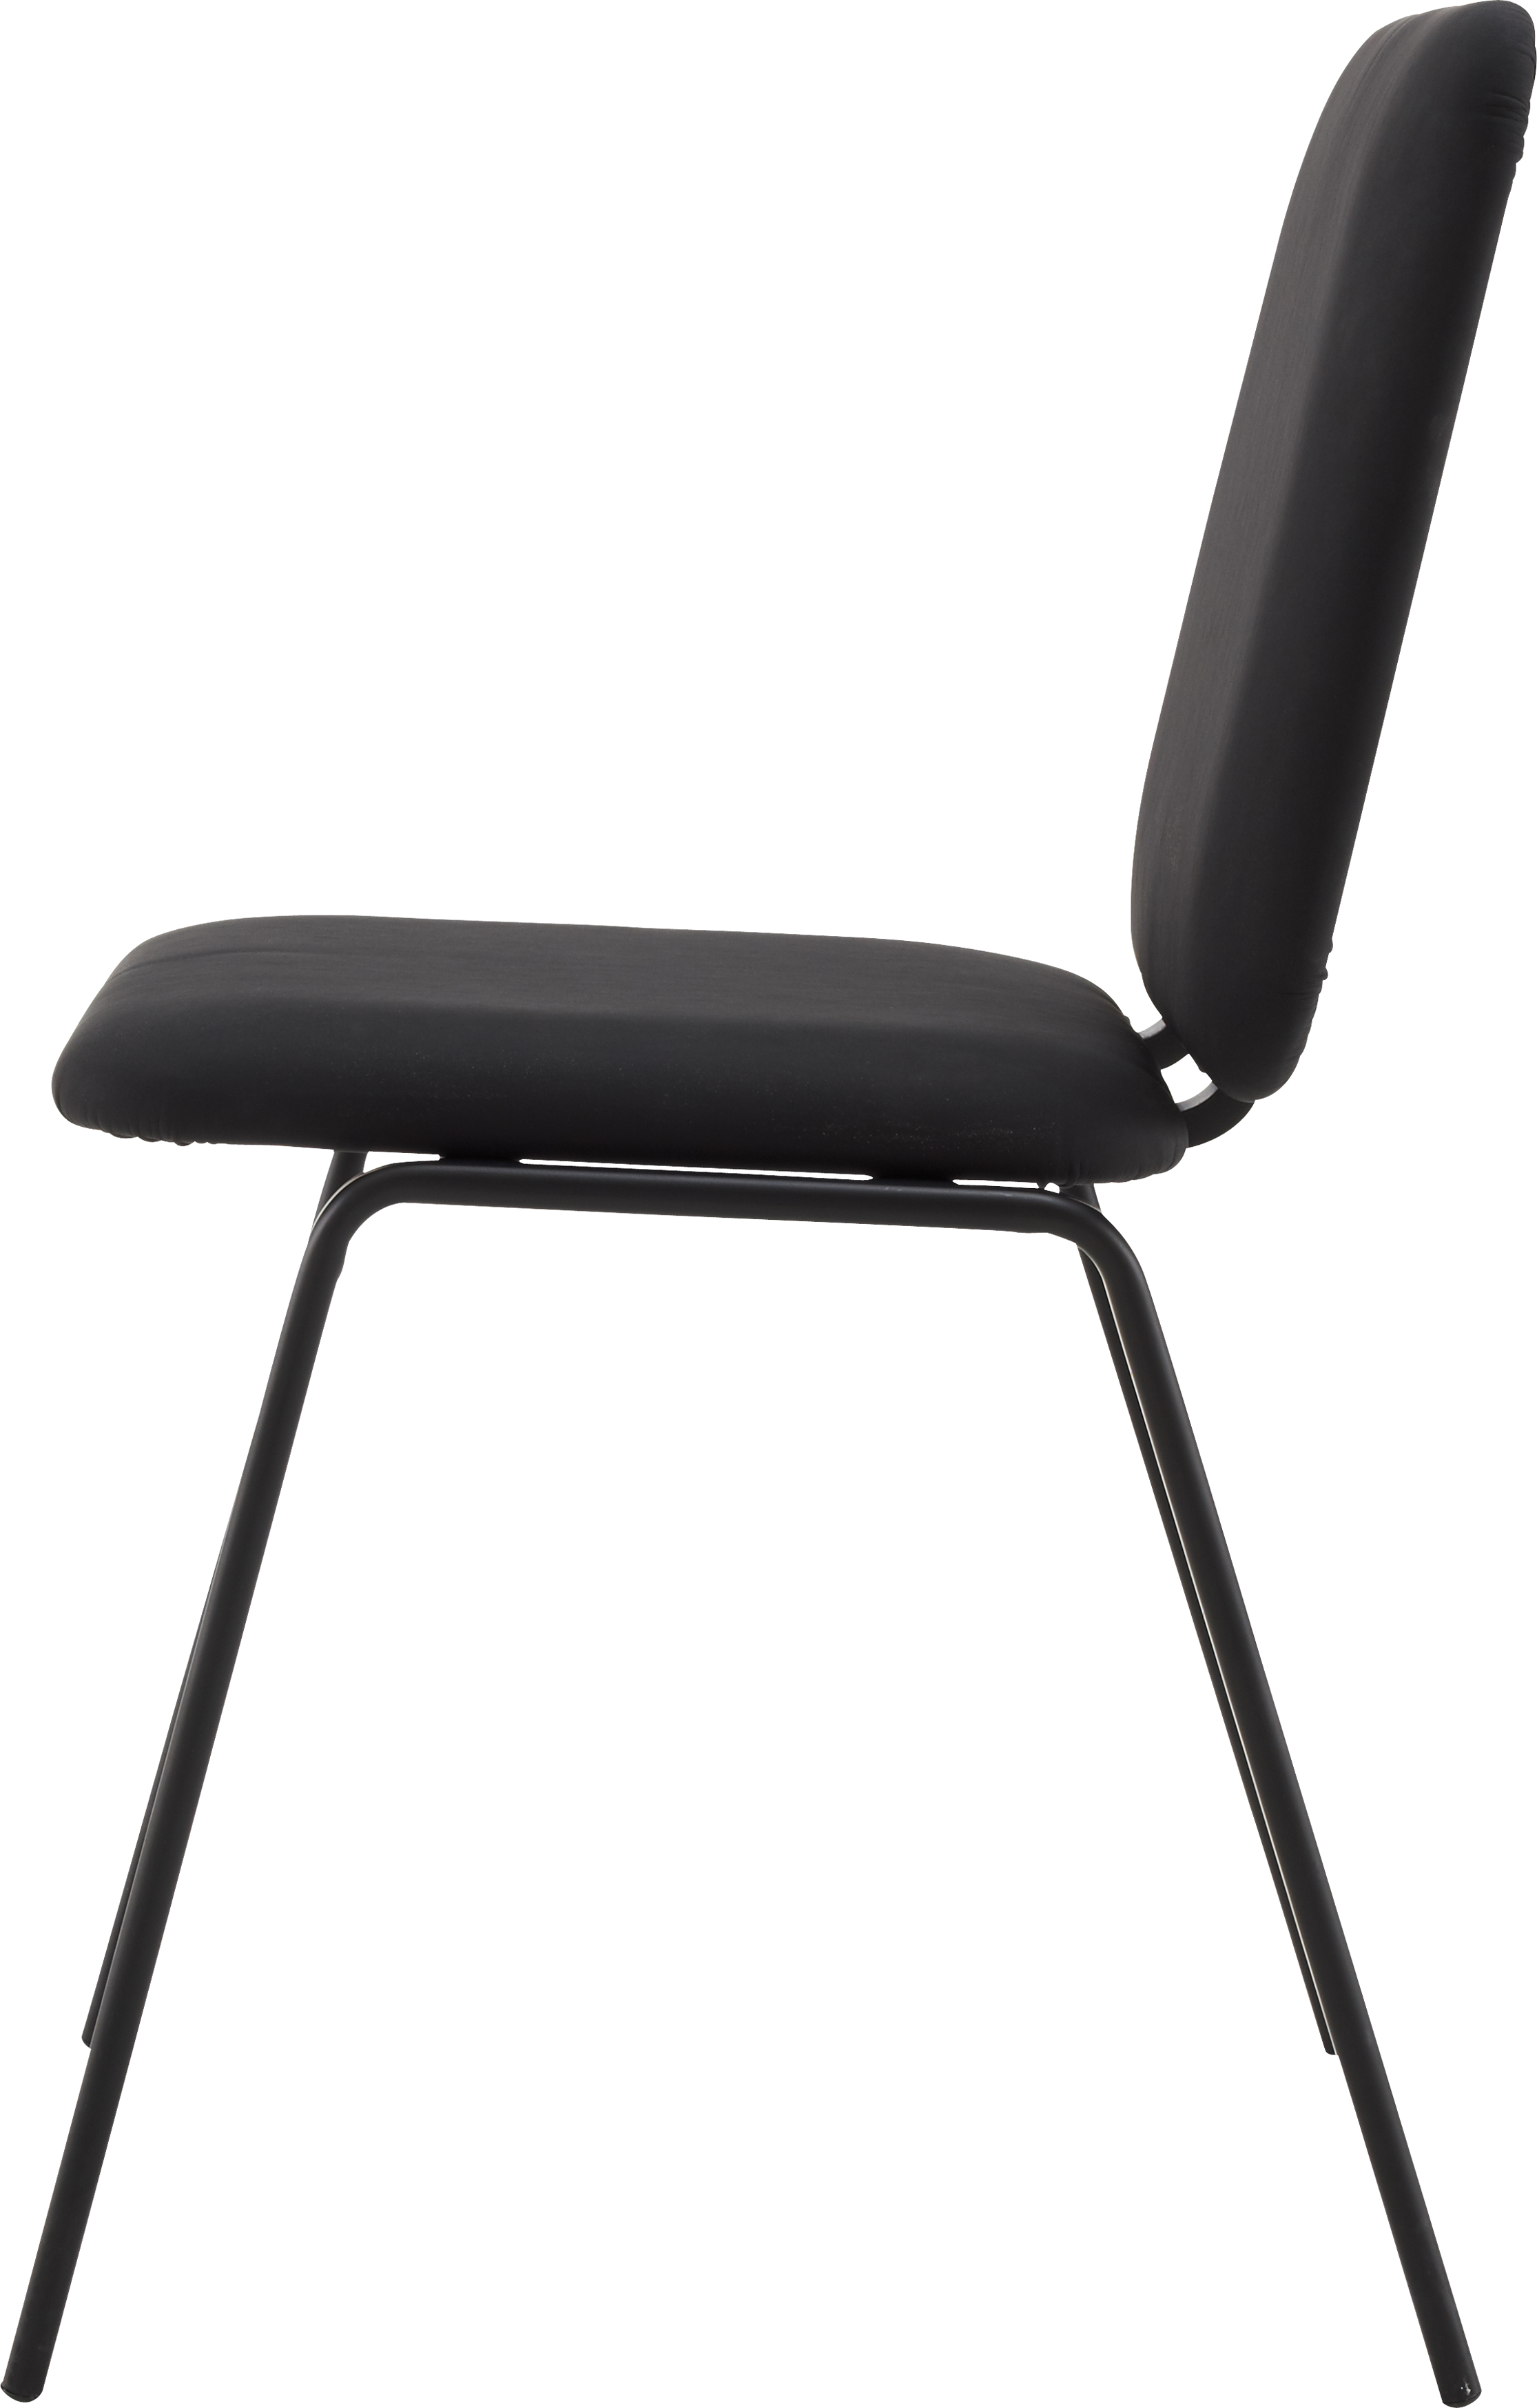 uploads chair chair PNG6903 3